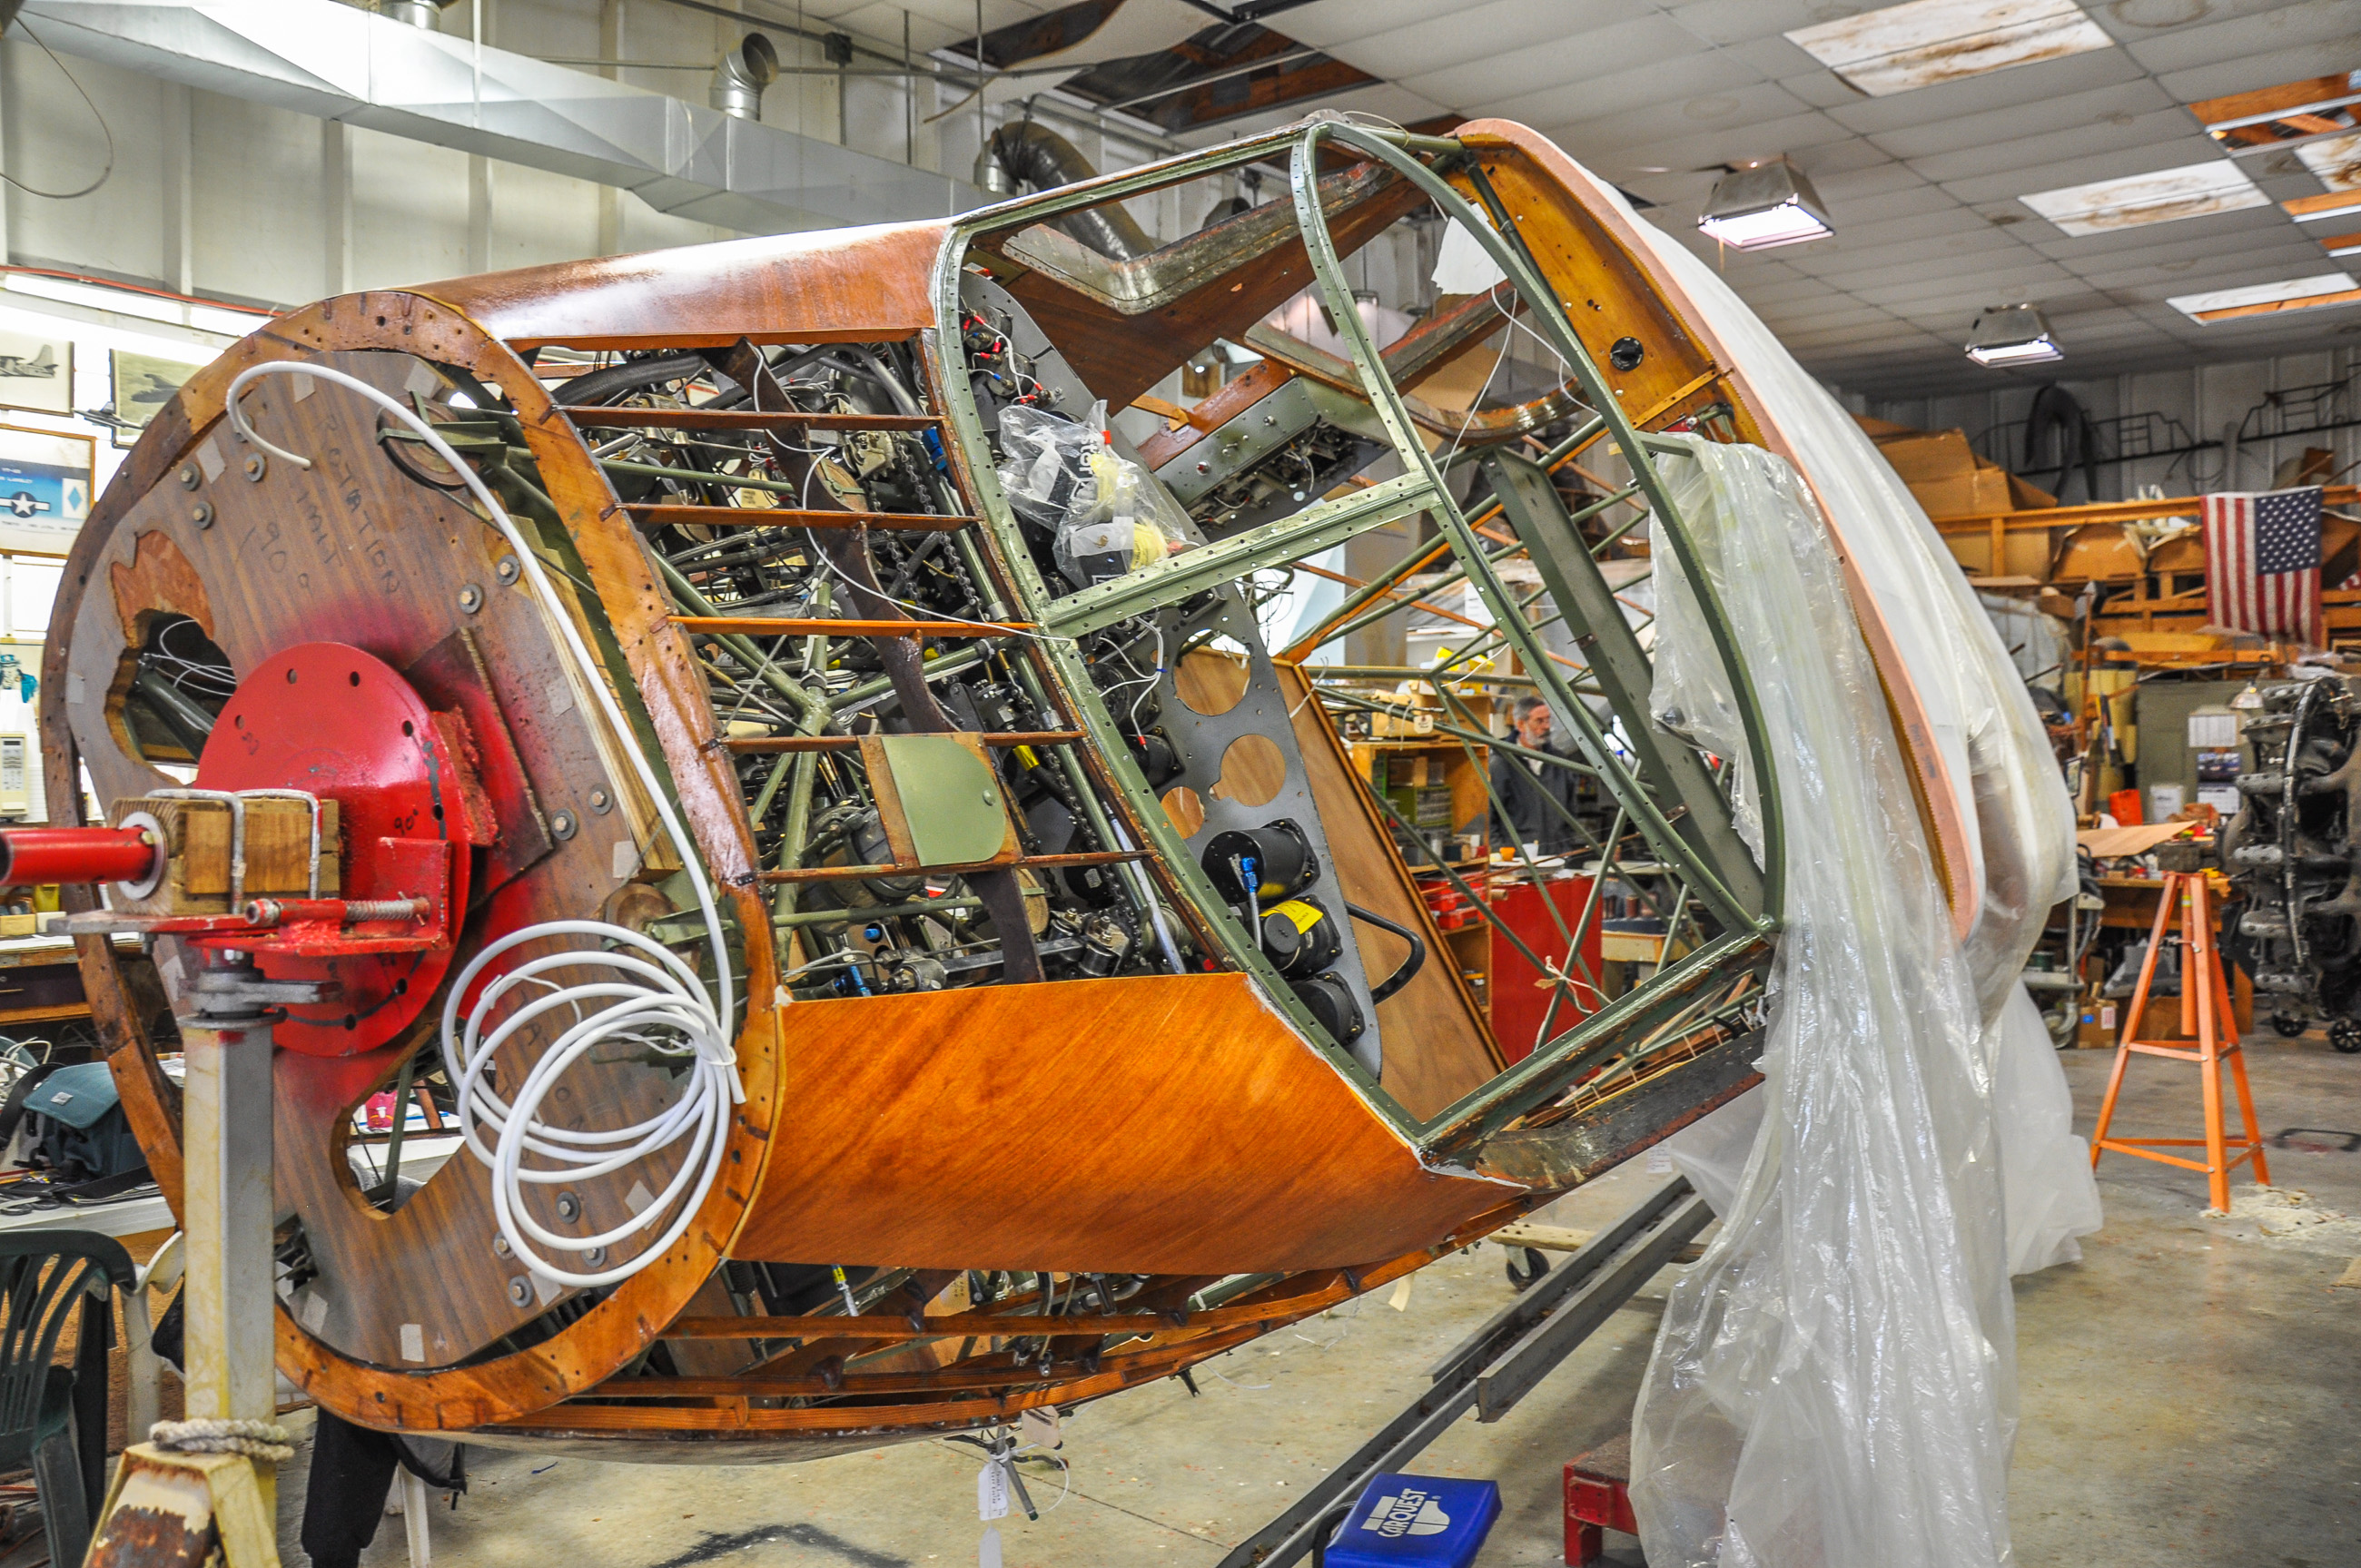 The UC-78 in the rotisserie (taken November 2014). (photo by David Cohen)